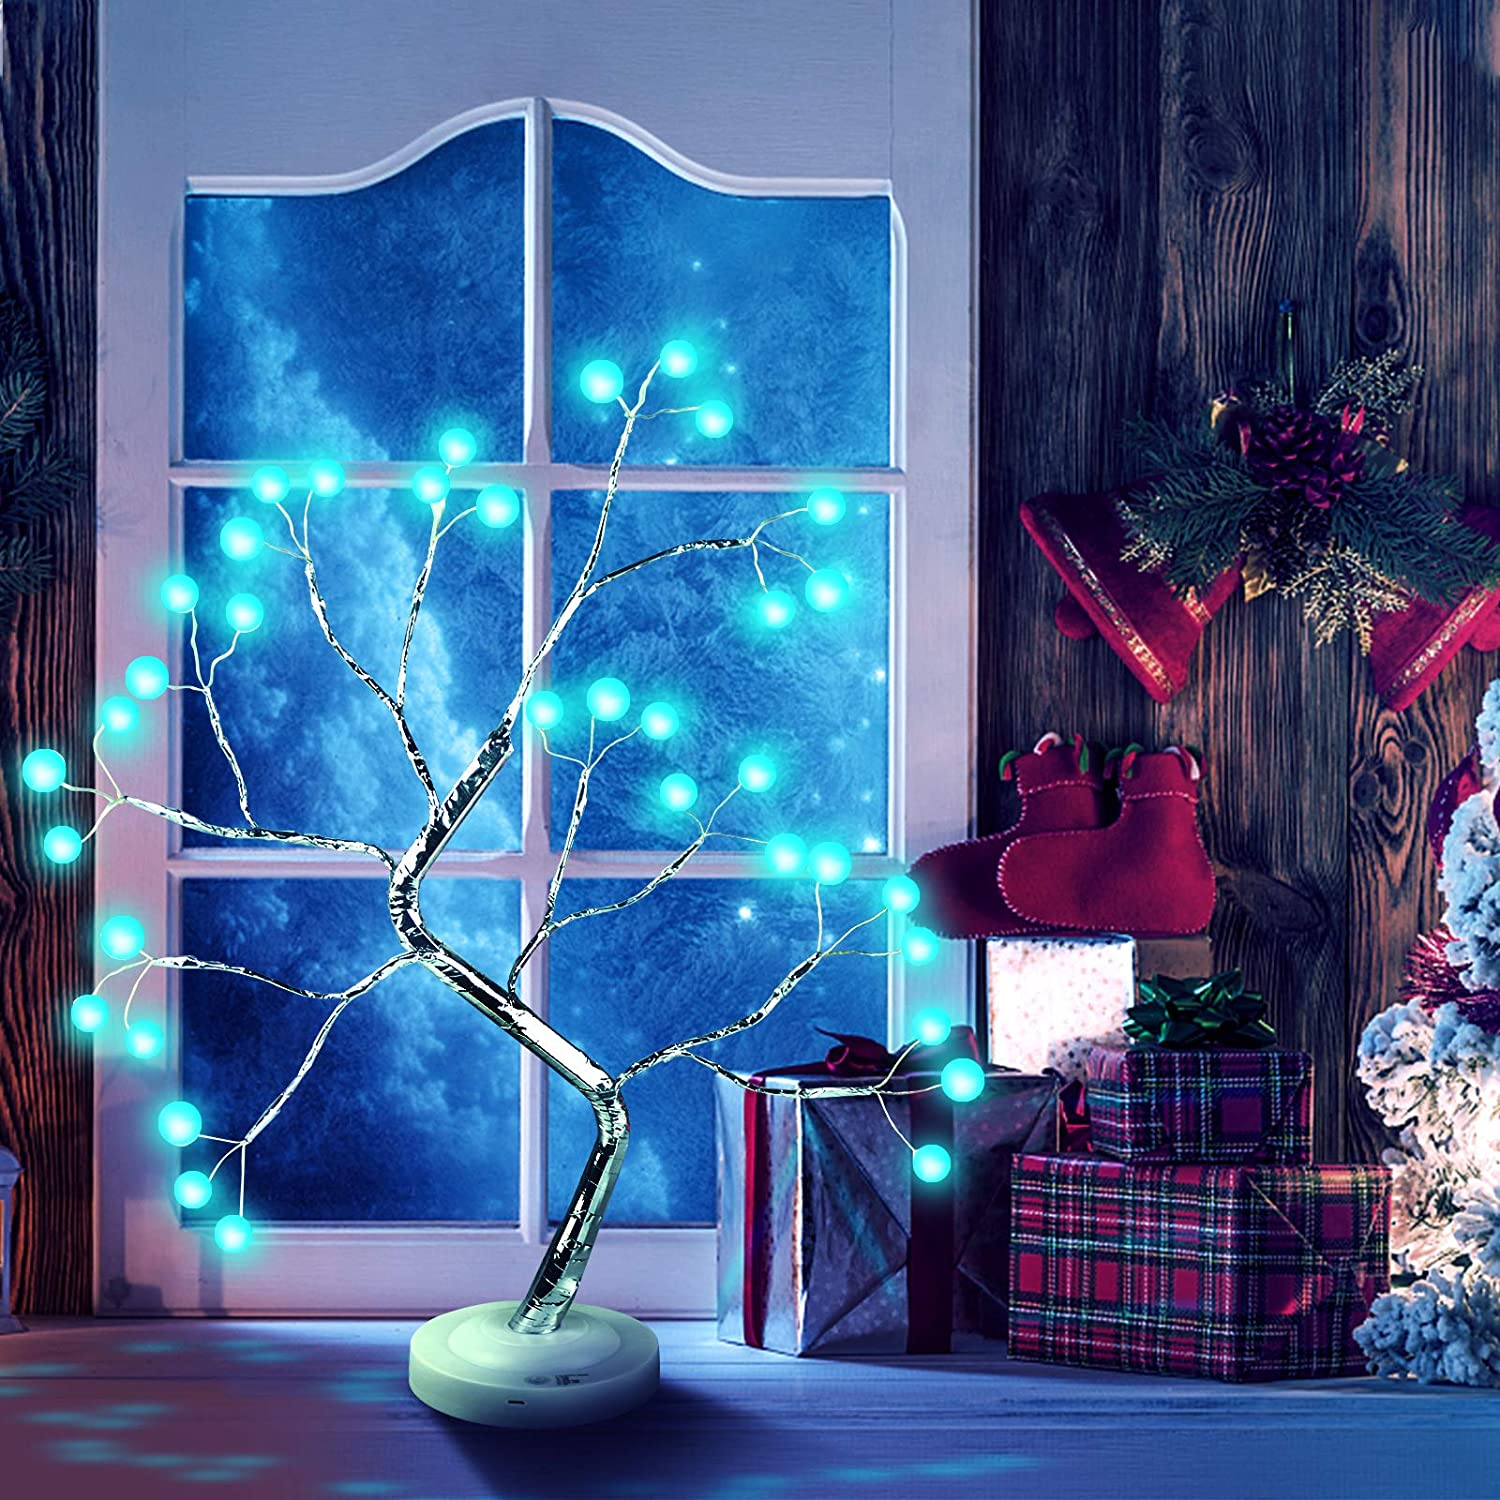 Battery//USB Operated DIY LED Desk Tree Lamp with Remote Control 16 Color 36 LED Crack Shaped lamp Adjustable Branches Desk Table Decor for Christmas Party Home Decoration Bonsai Tree Light